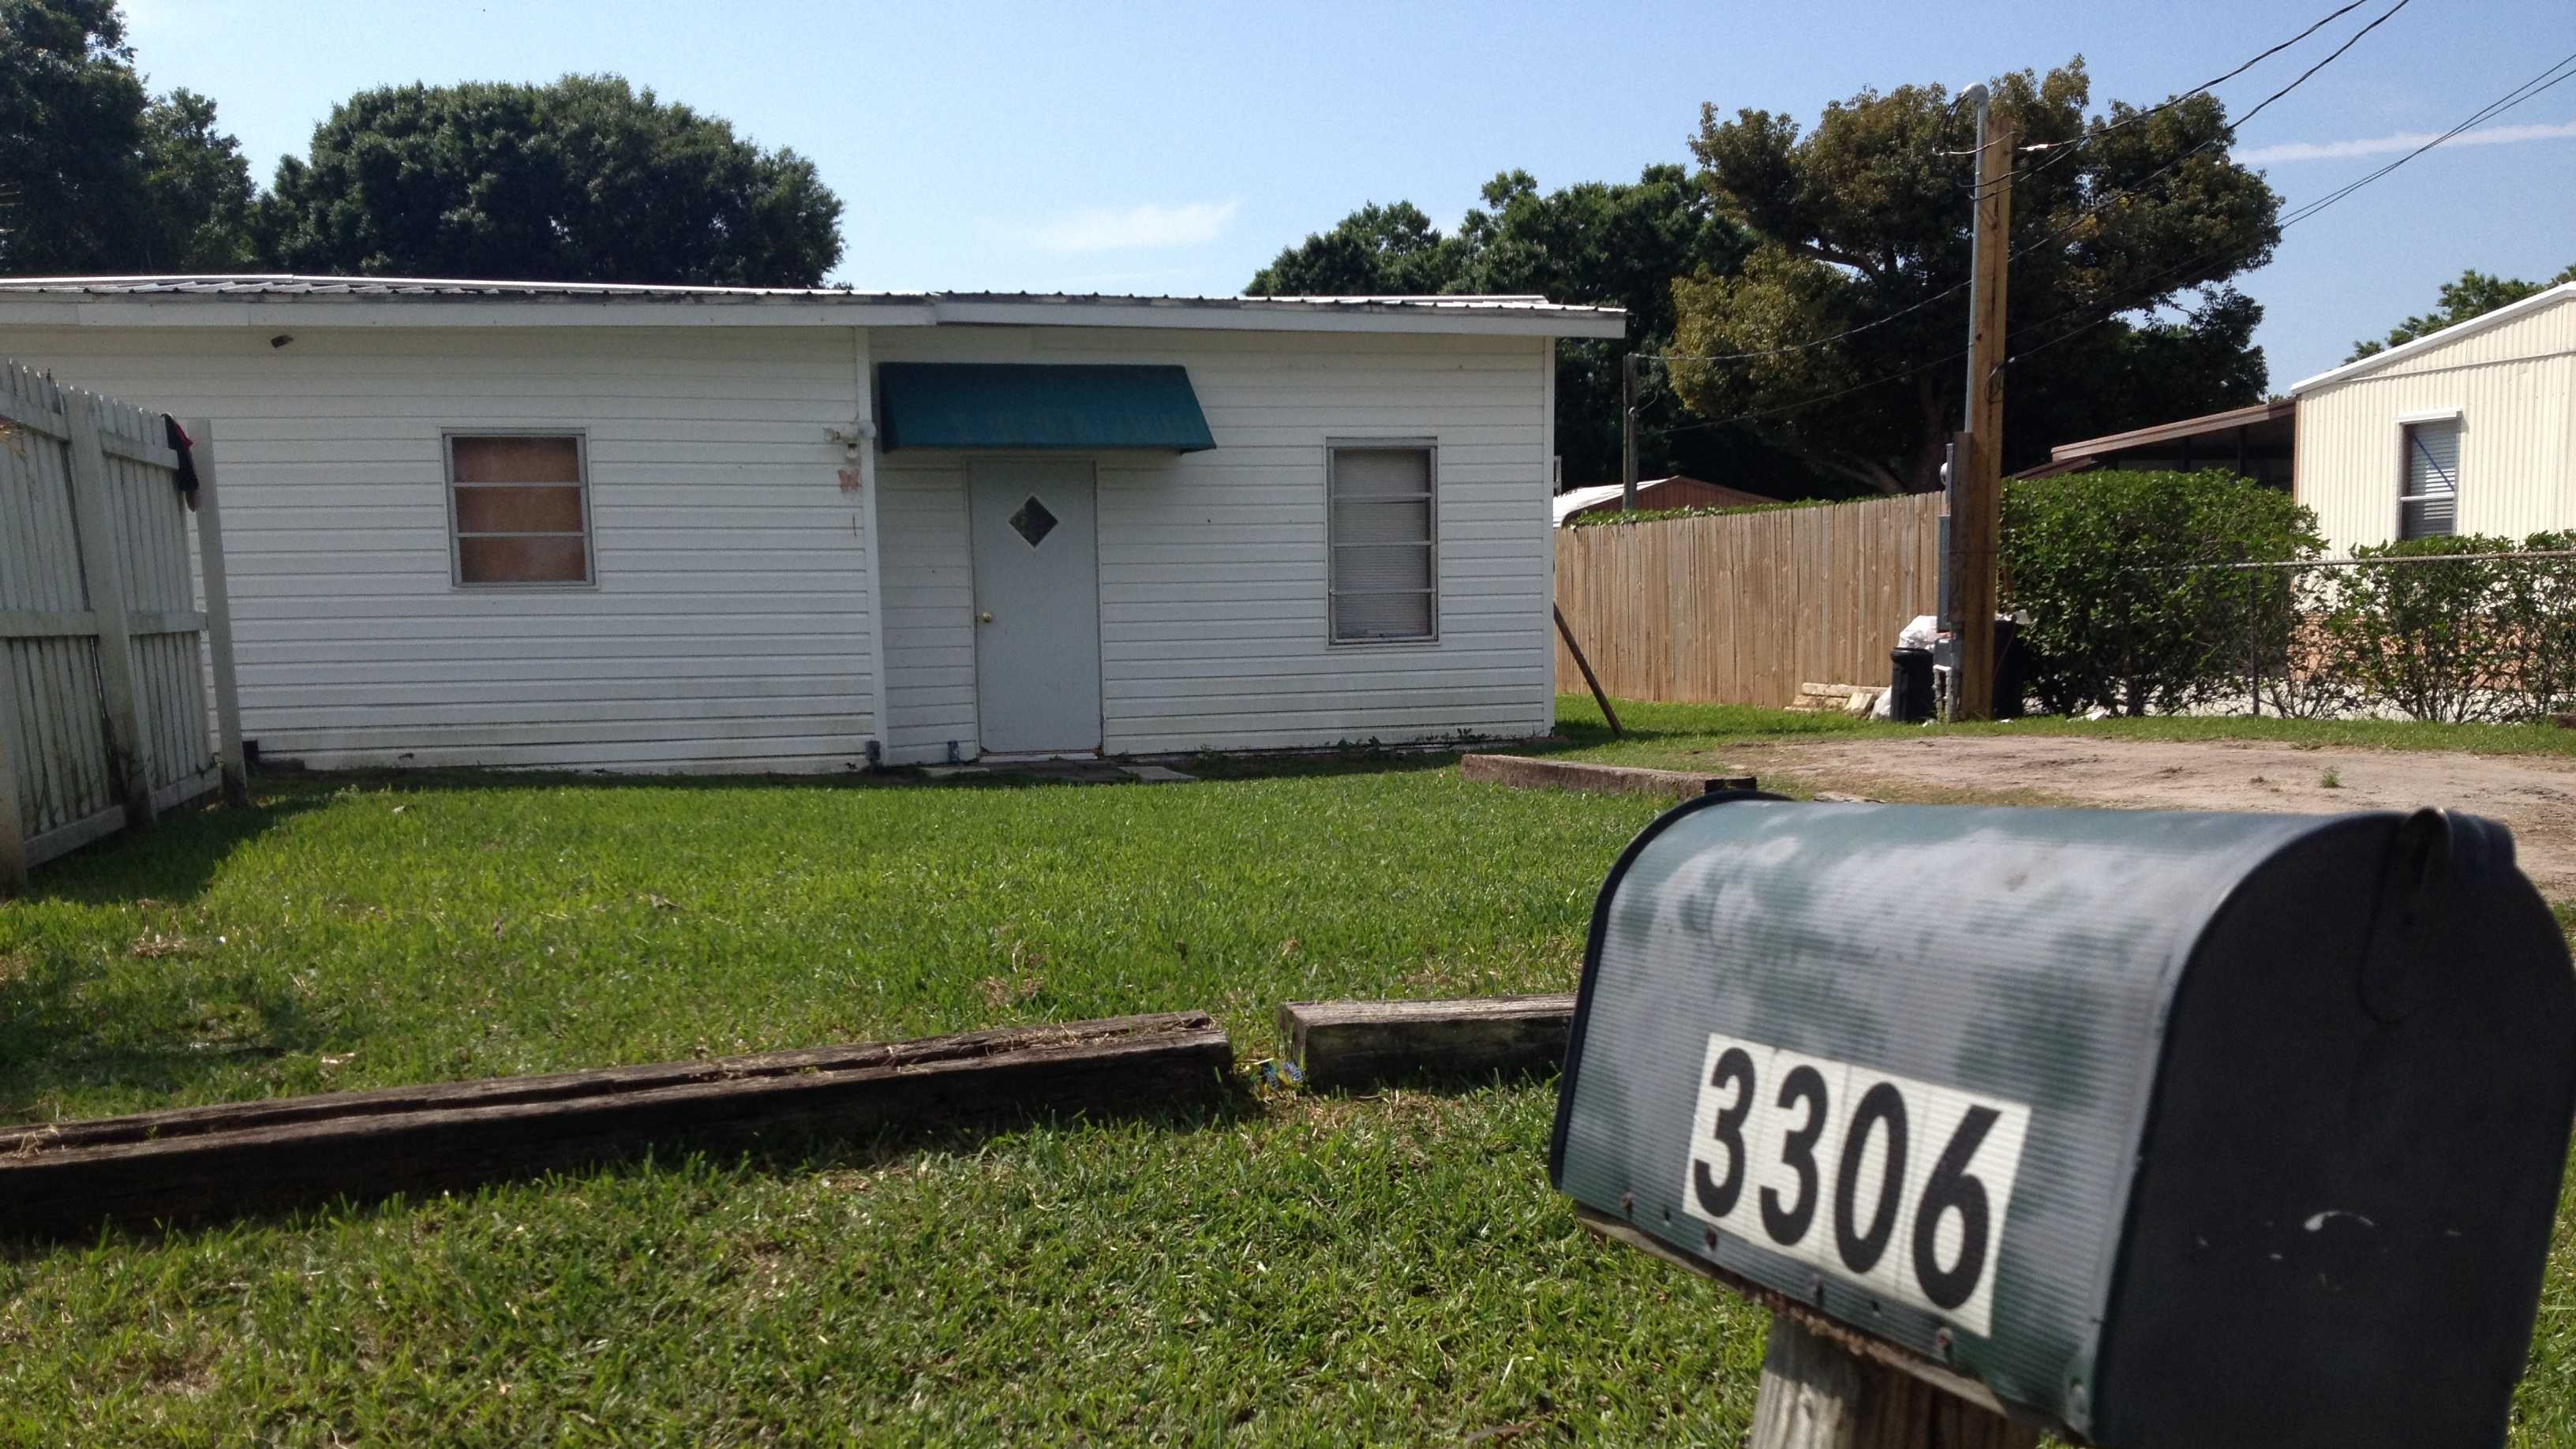 A man was shot during a home invasion at this house in Okeechobee on Sunday night.